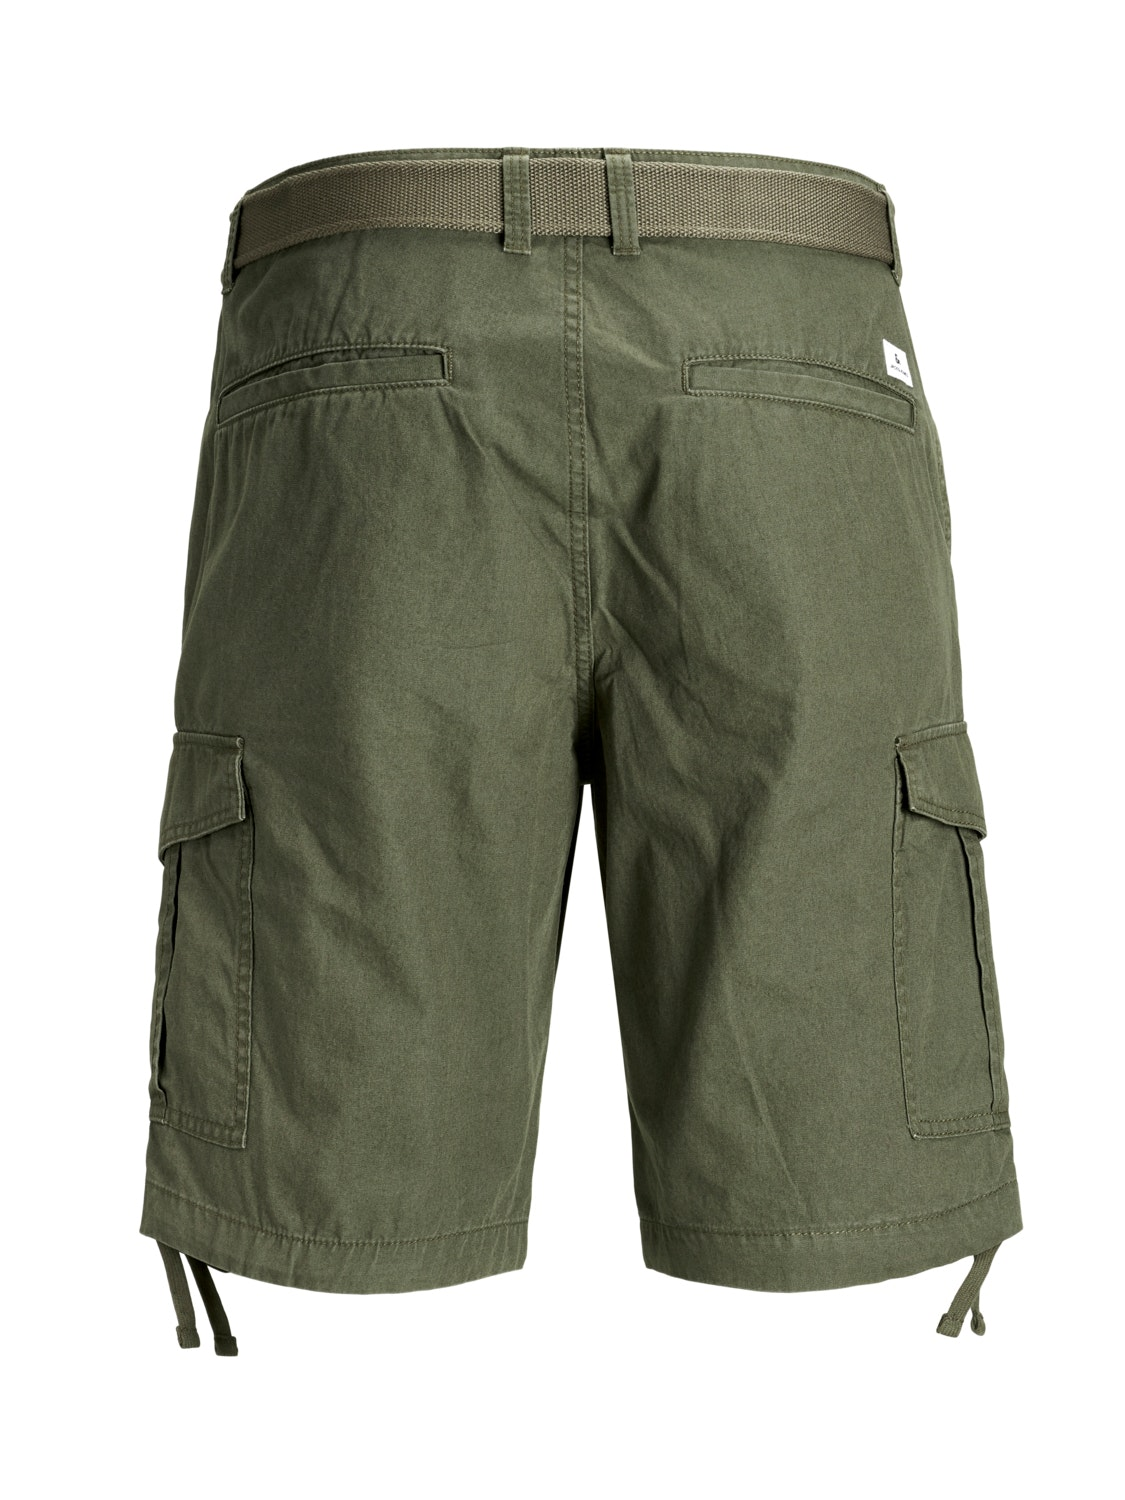 Jack /& Jones Shorts caballero jcomelange